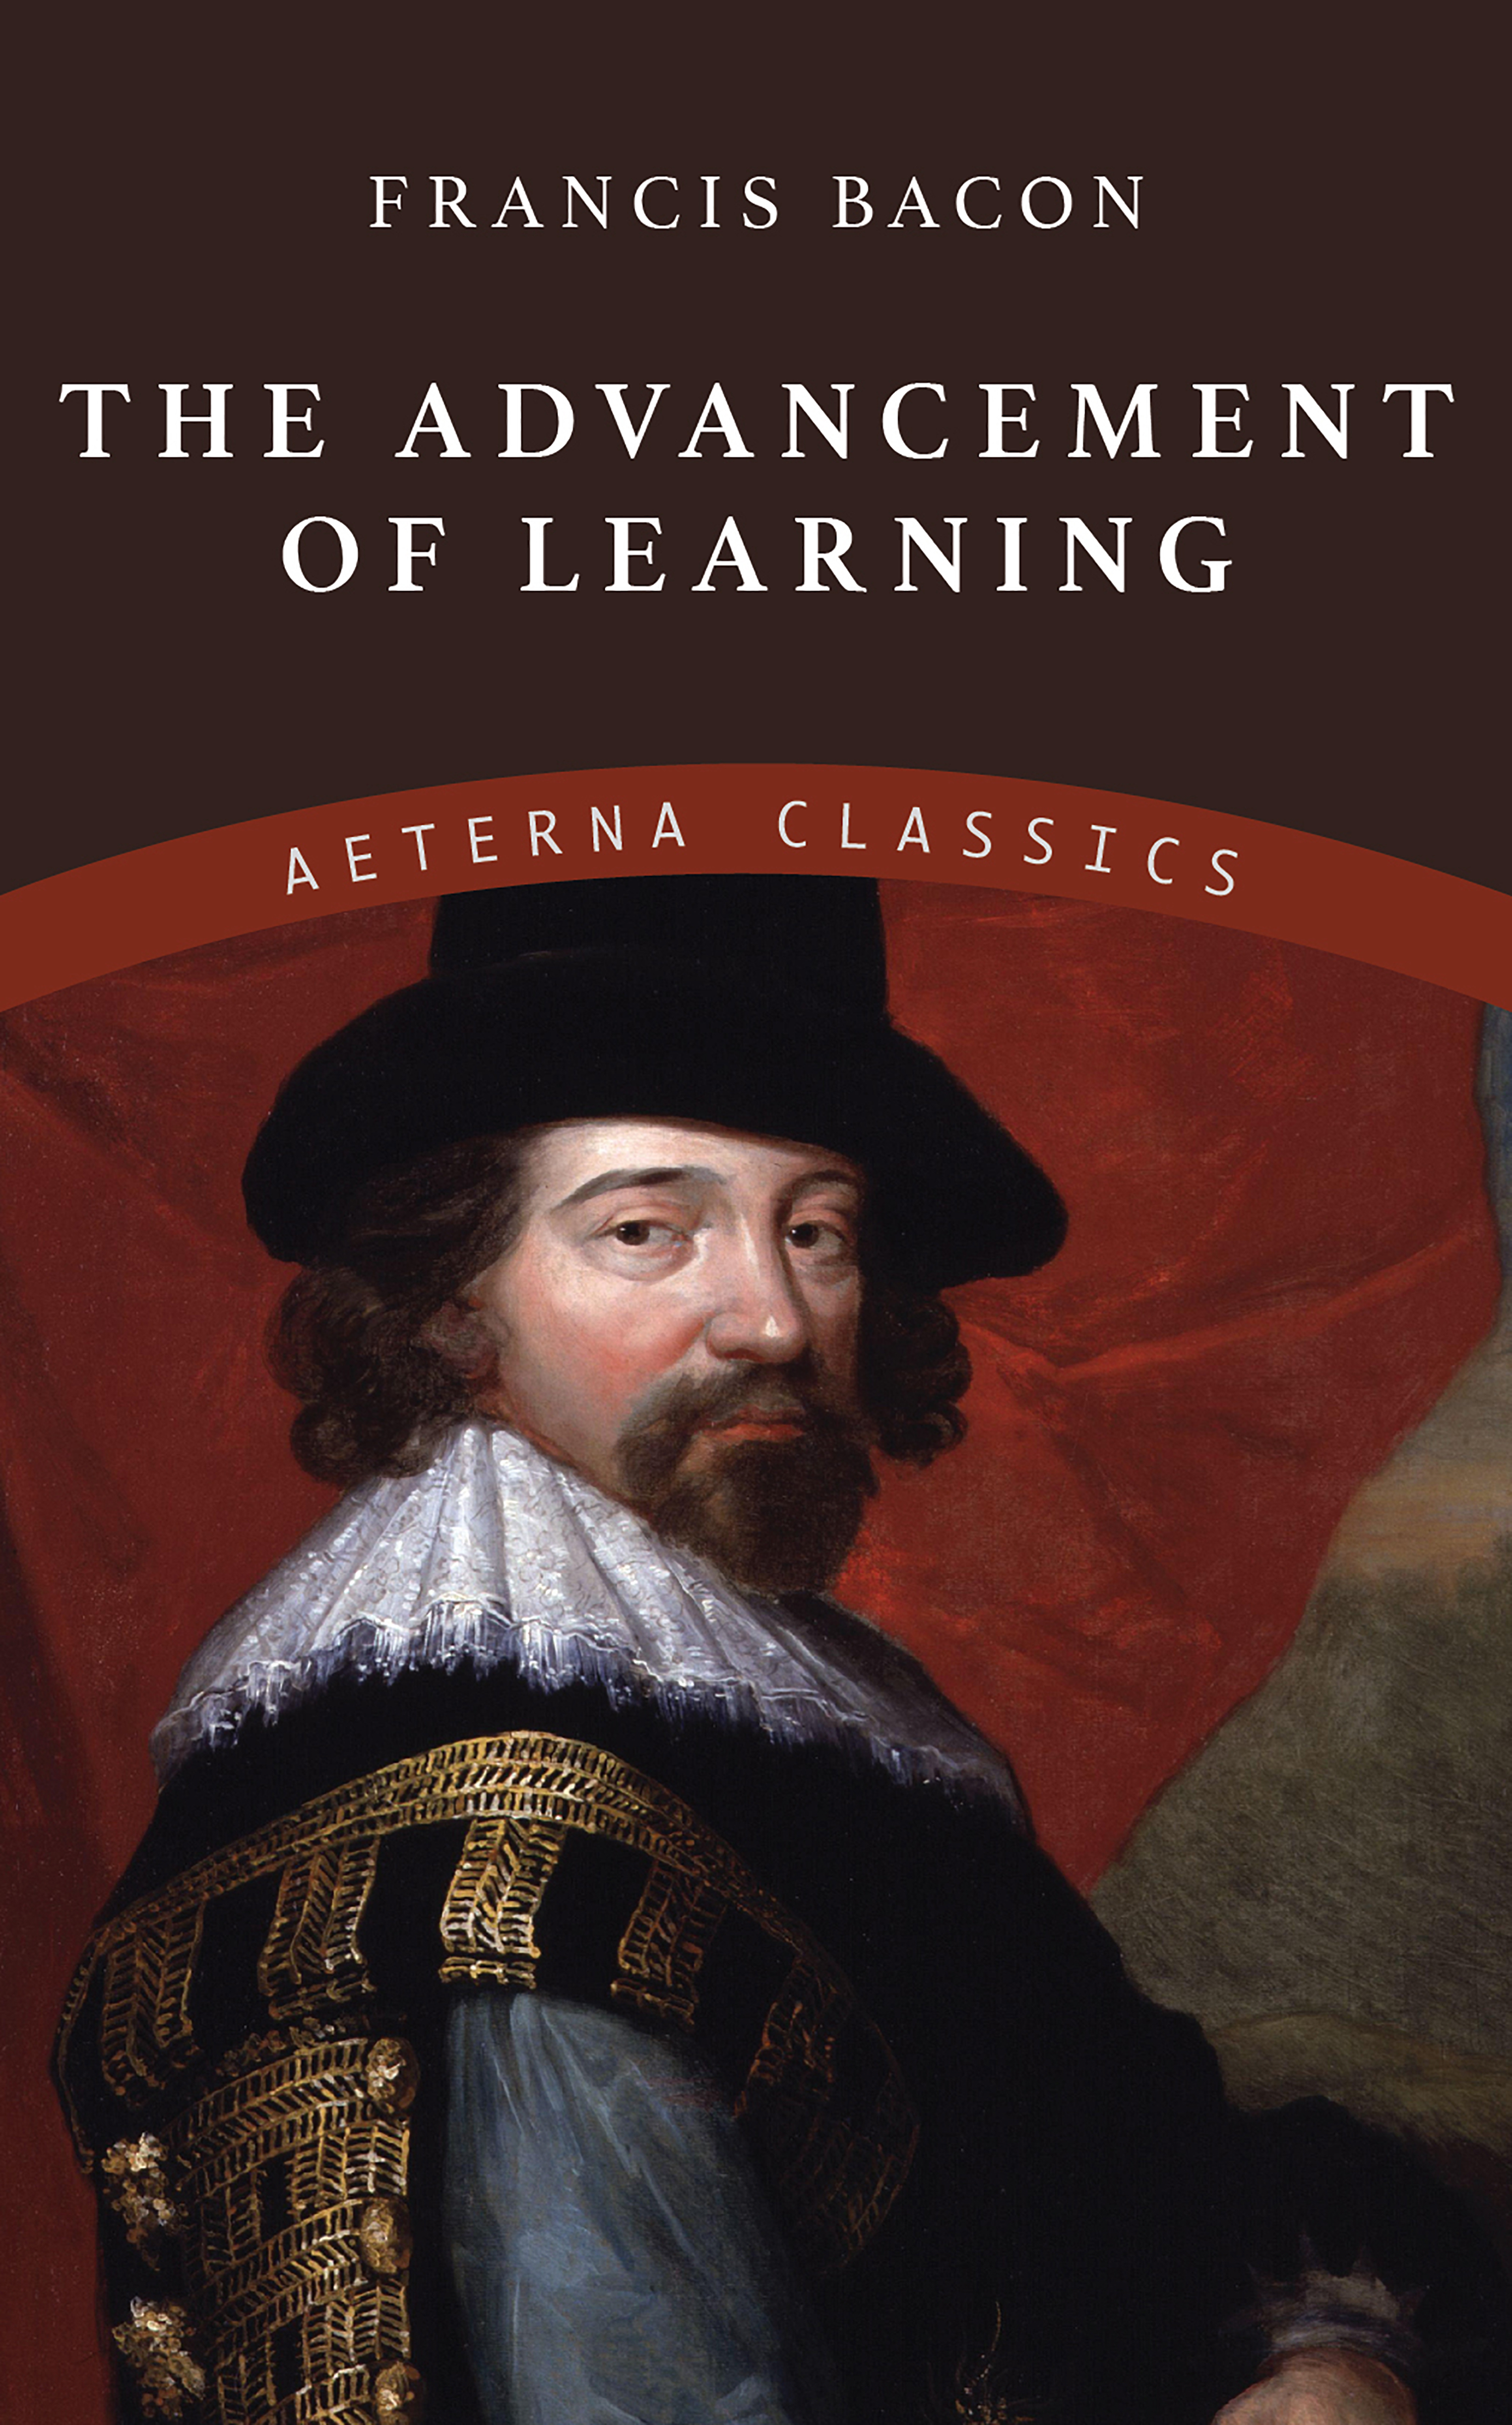 Francis Bacon The Advancement of Learning